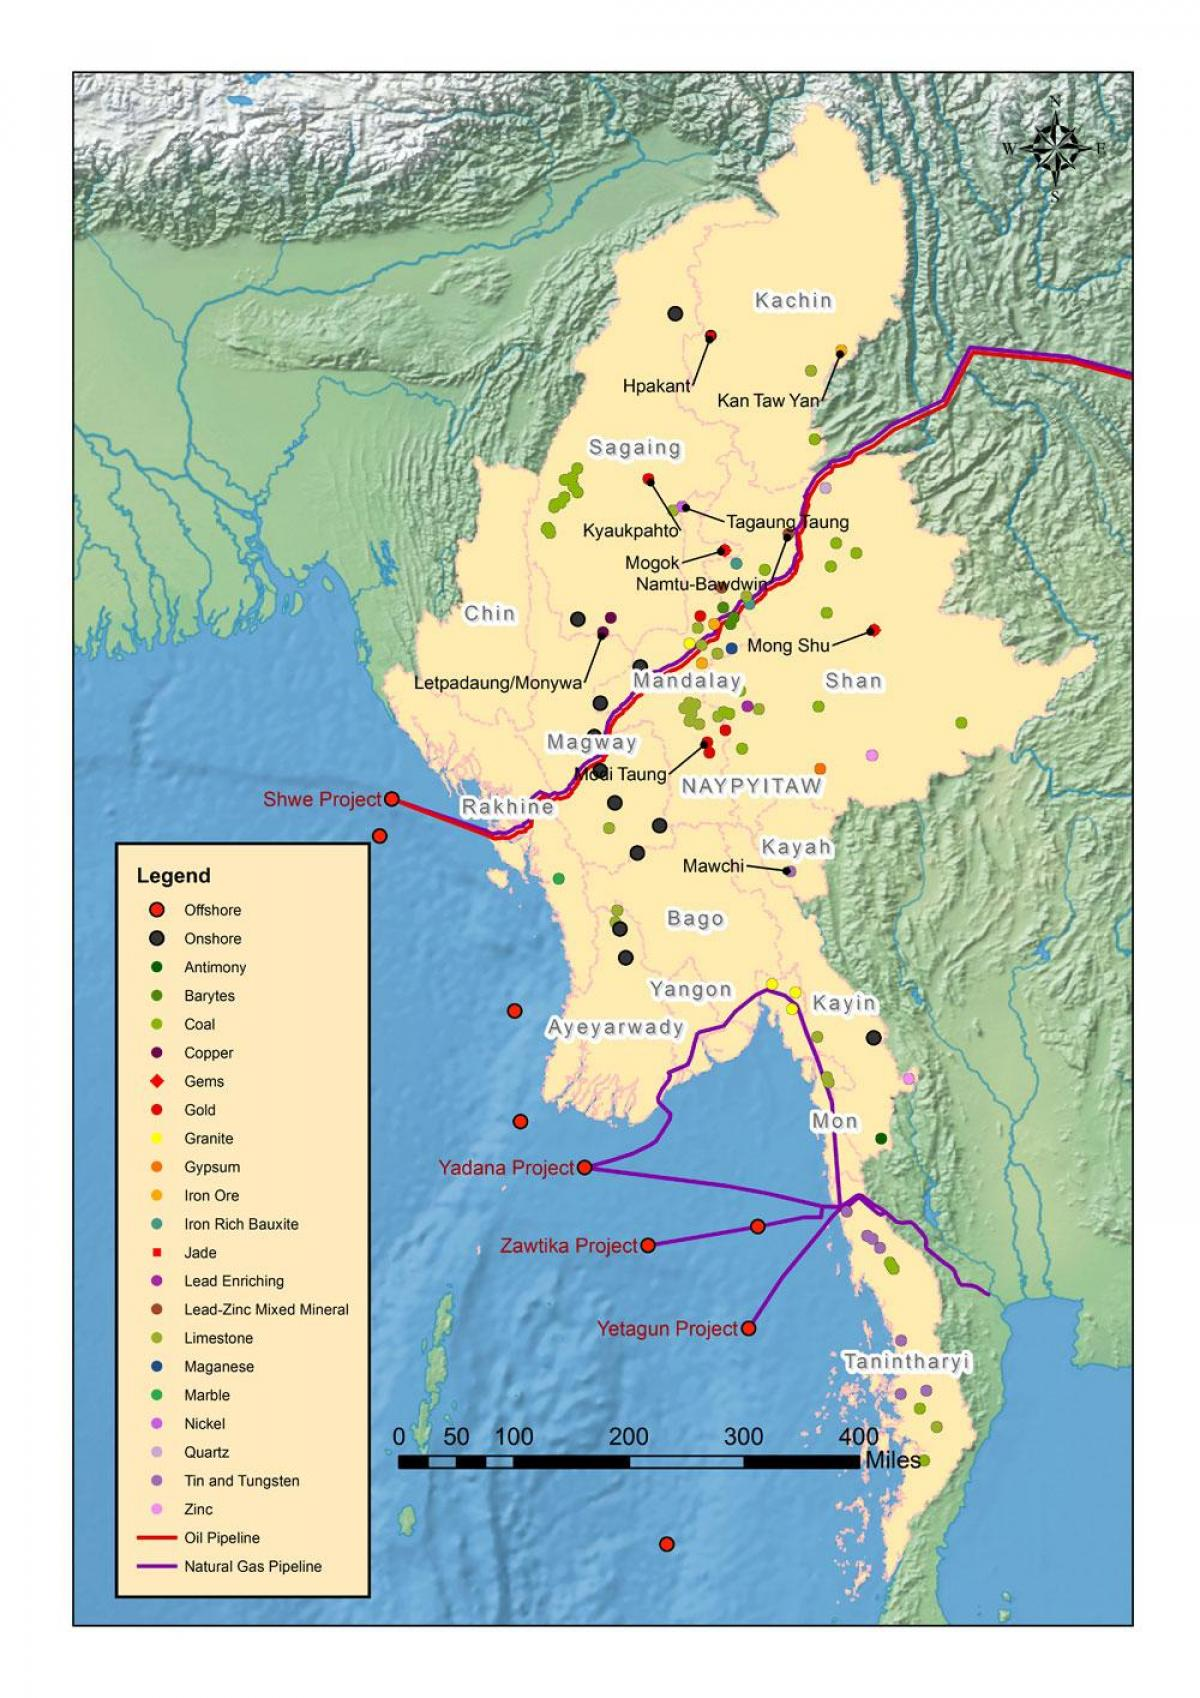 Map Of Asia Resources.Myanmar Natural Resources Map Map Of Myanmar Natural Resources